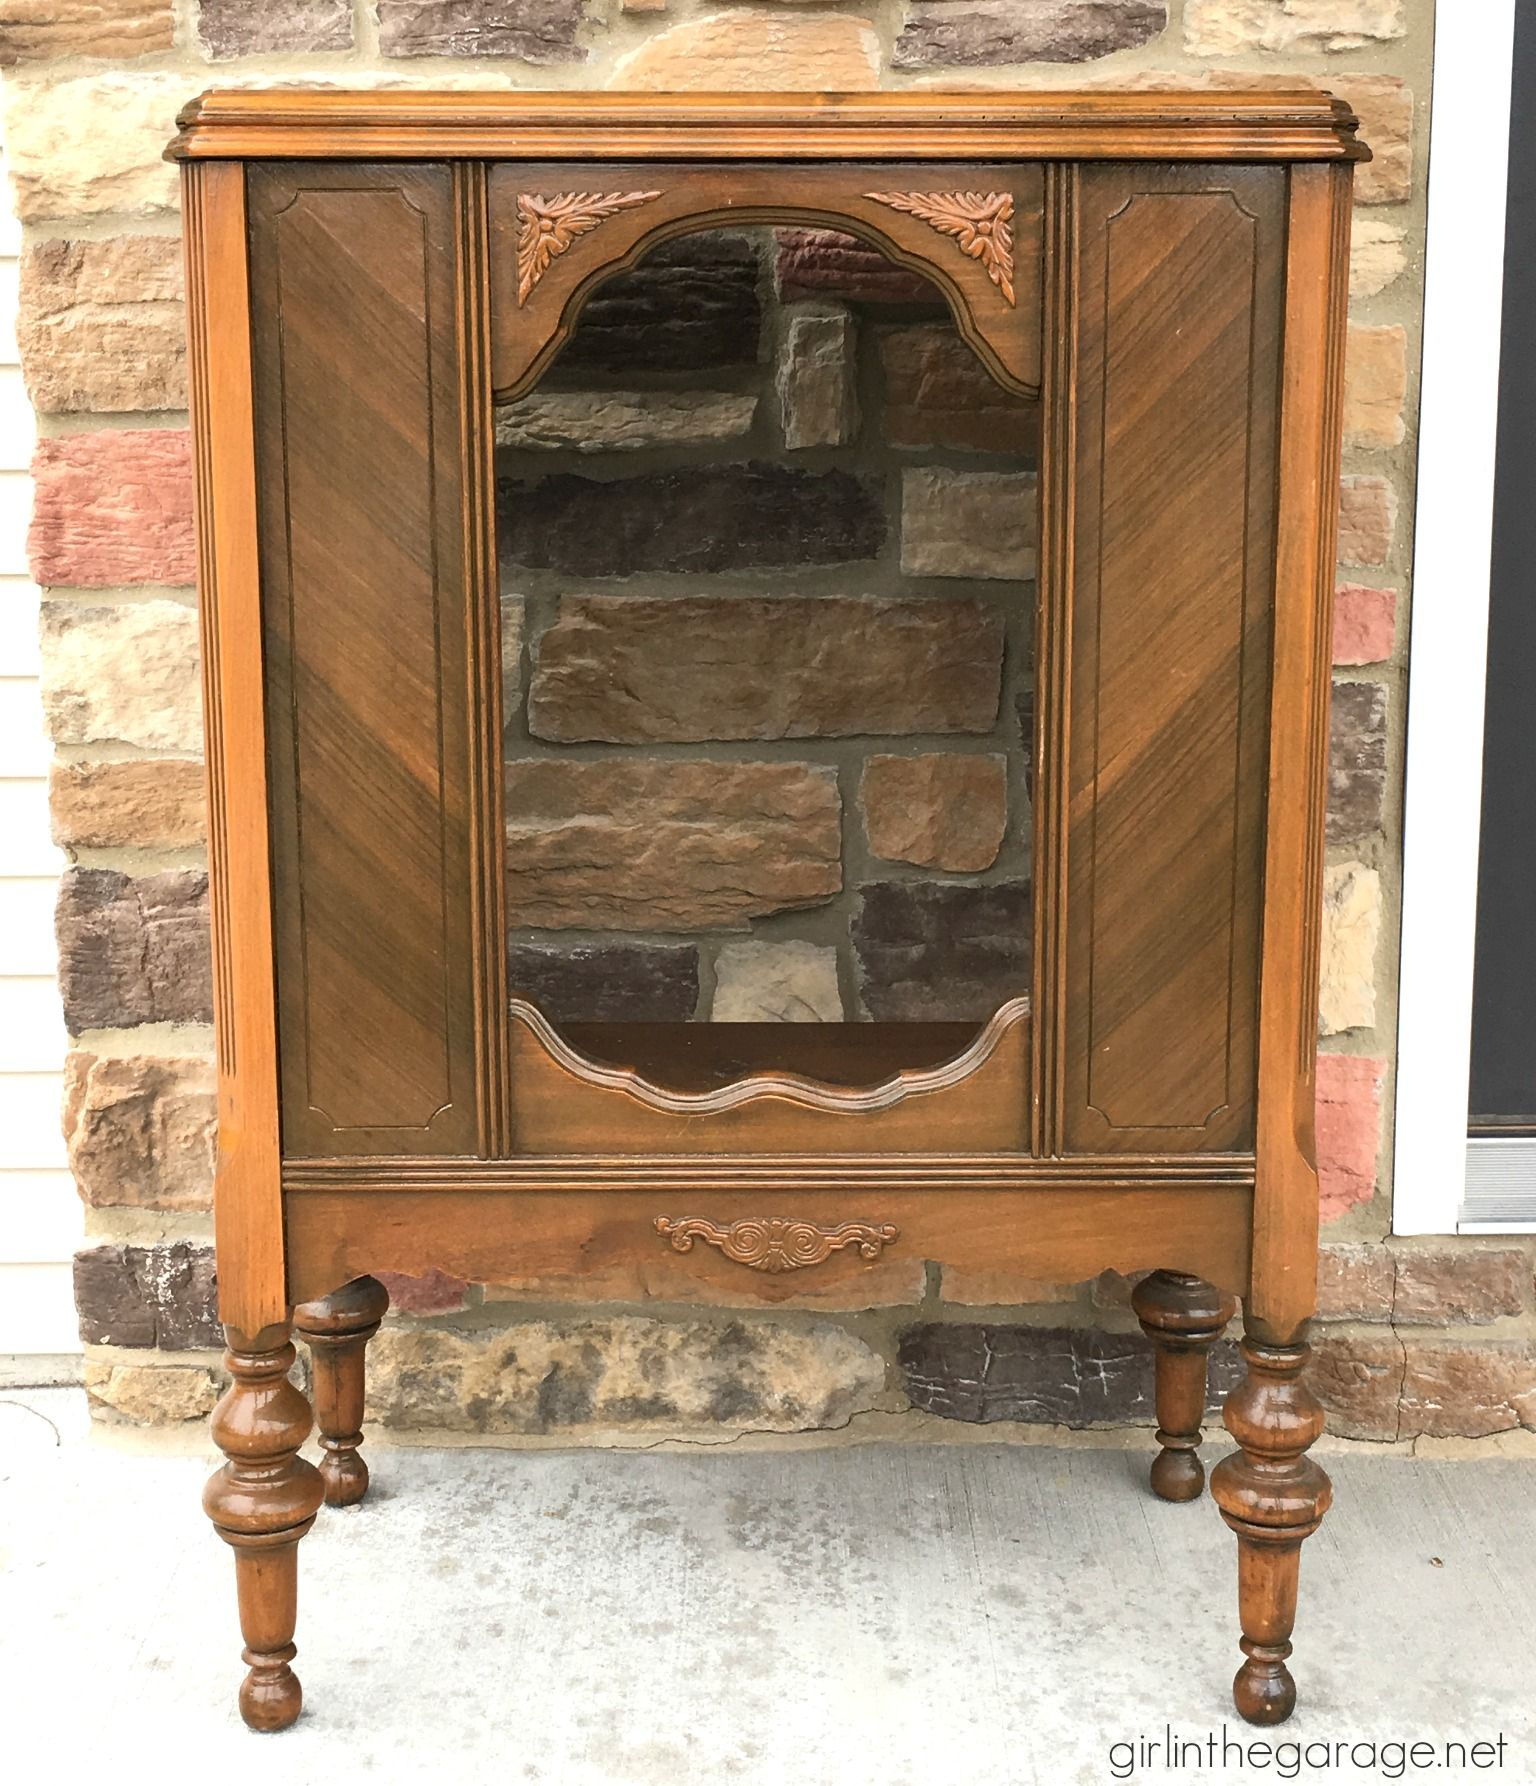 Repurposed antique radio cabinet makeover to bookcase - by Girl in the  Garage - Yard Sale Radio Cabinet Makeover Girl In The Garage Pinterest